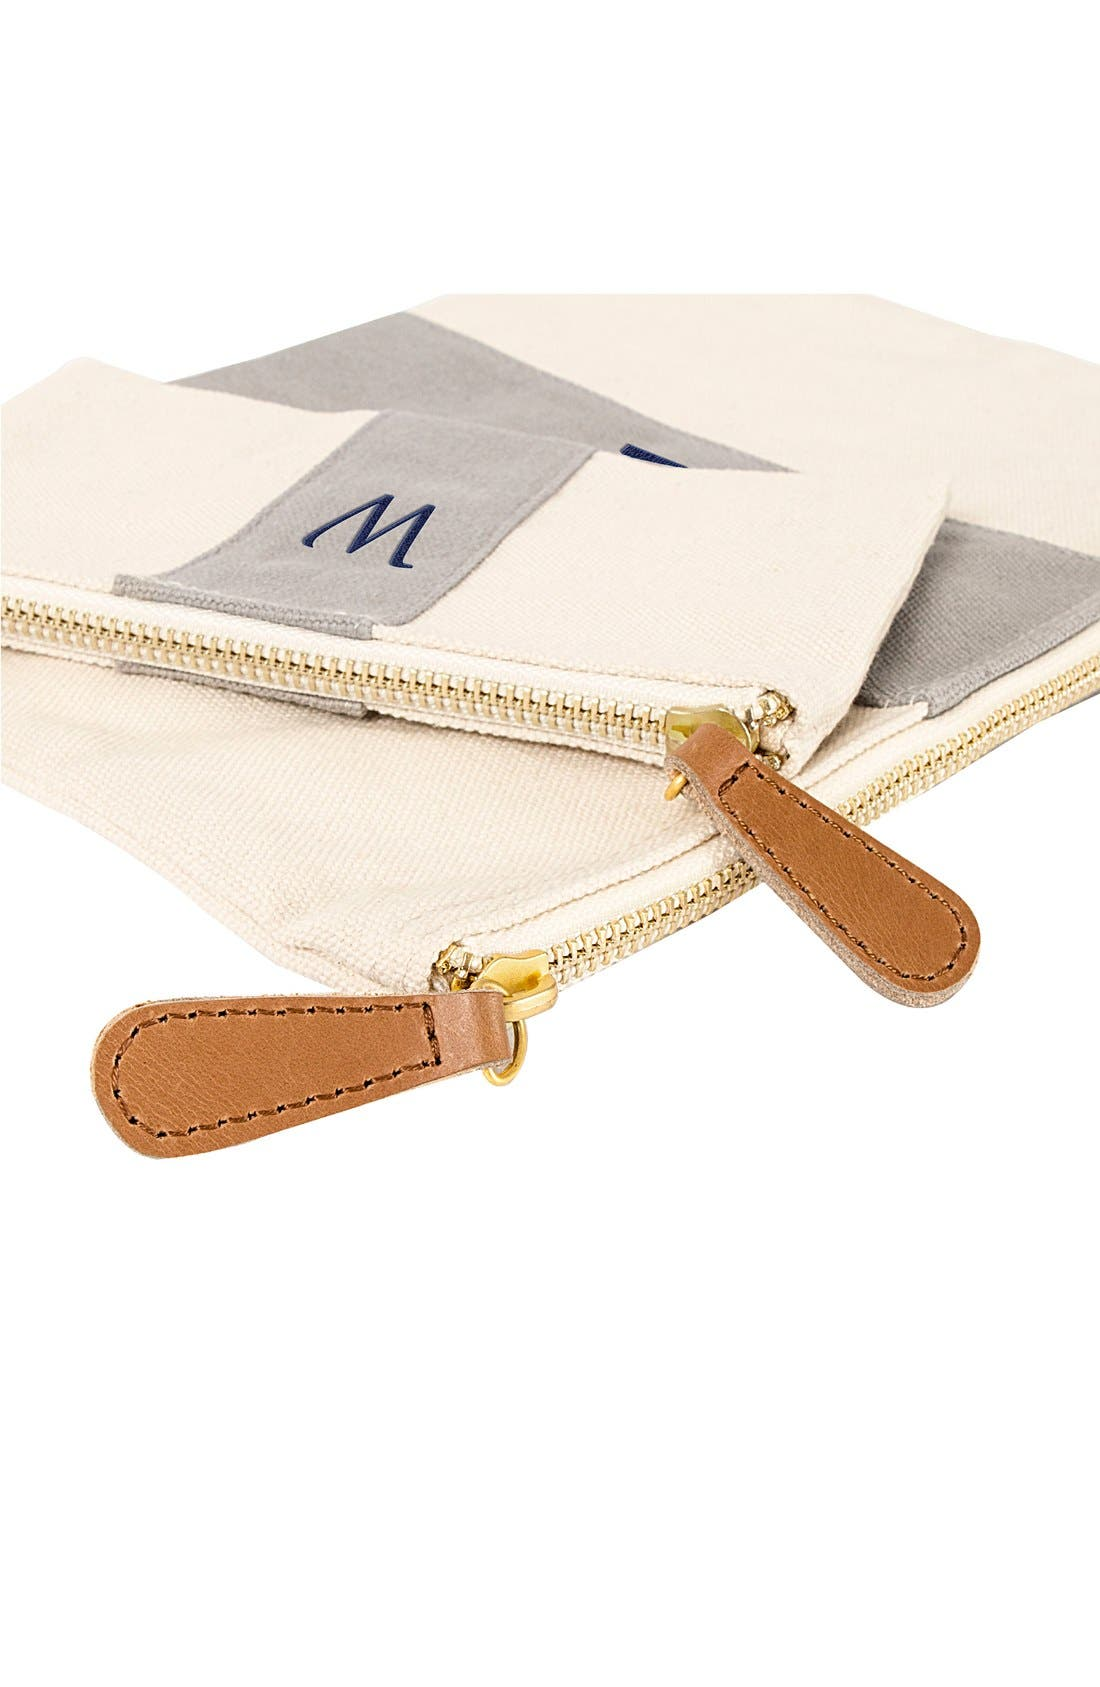 Alternate Image 3  - Cathy's Concepts Personalized Canvas Clutch